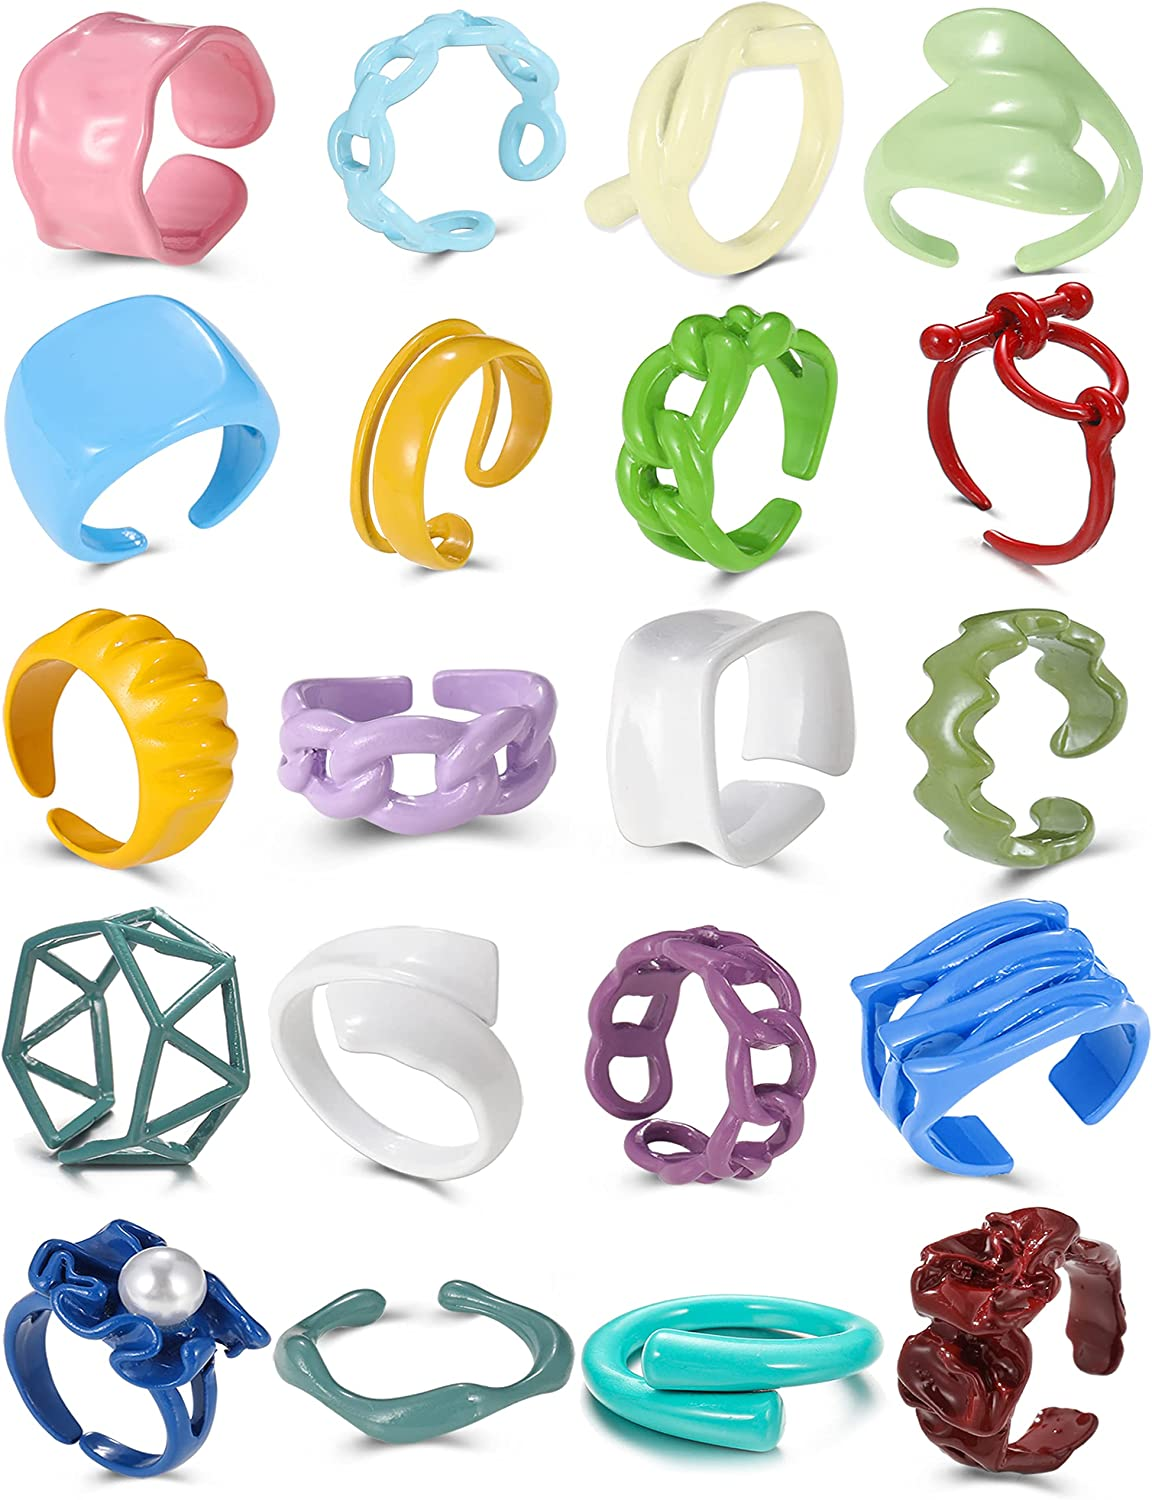 Chunky Rings Colorful 20 PCS Funky Tr Mesa Mall Resin Cute Nippon regular agency Ring Set Open